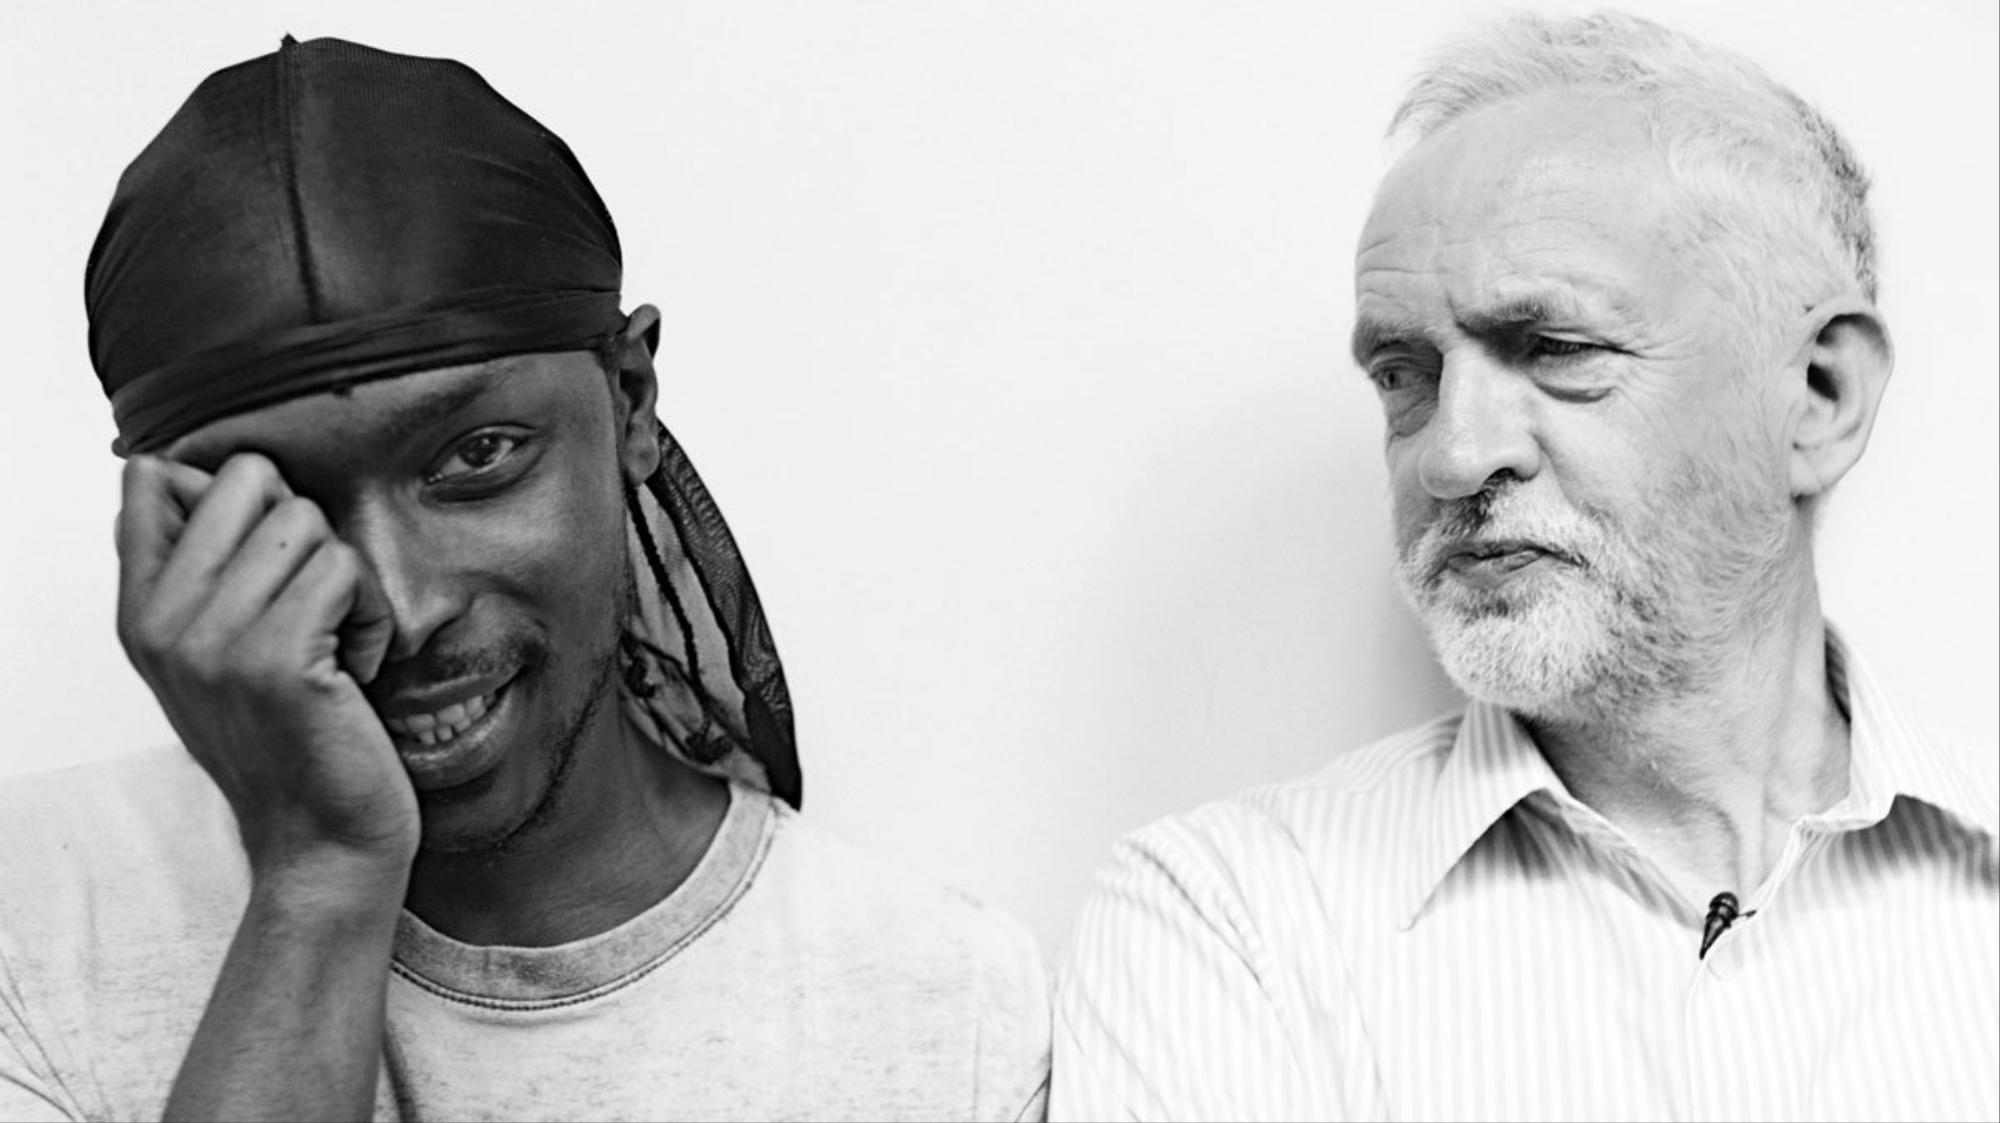 10 things we learnt from teaming up jme with jeremy corbyn